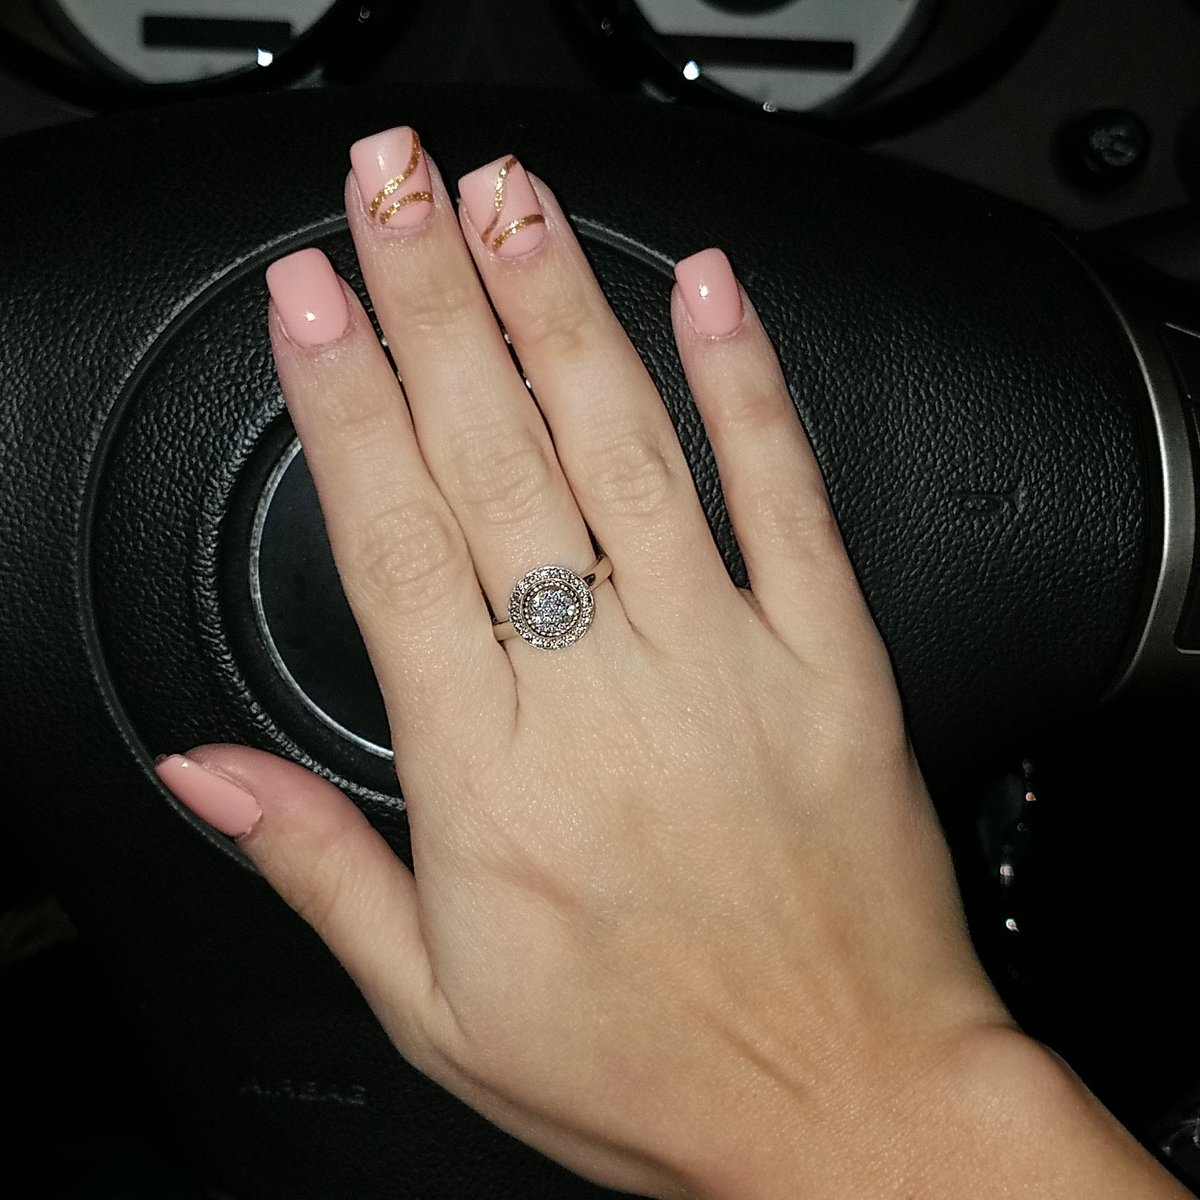 Ladies be sure to go to my nail place in @BrownsburgIN #IvyNails #maniMonday pic.twitter.com/TGC7uciTqP